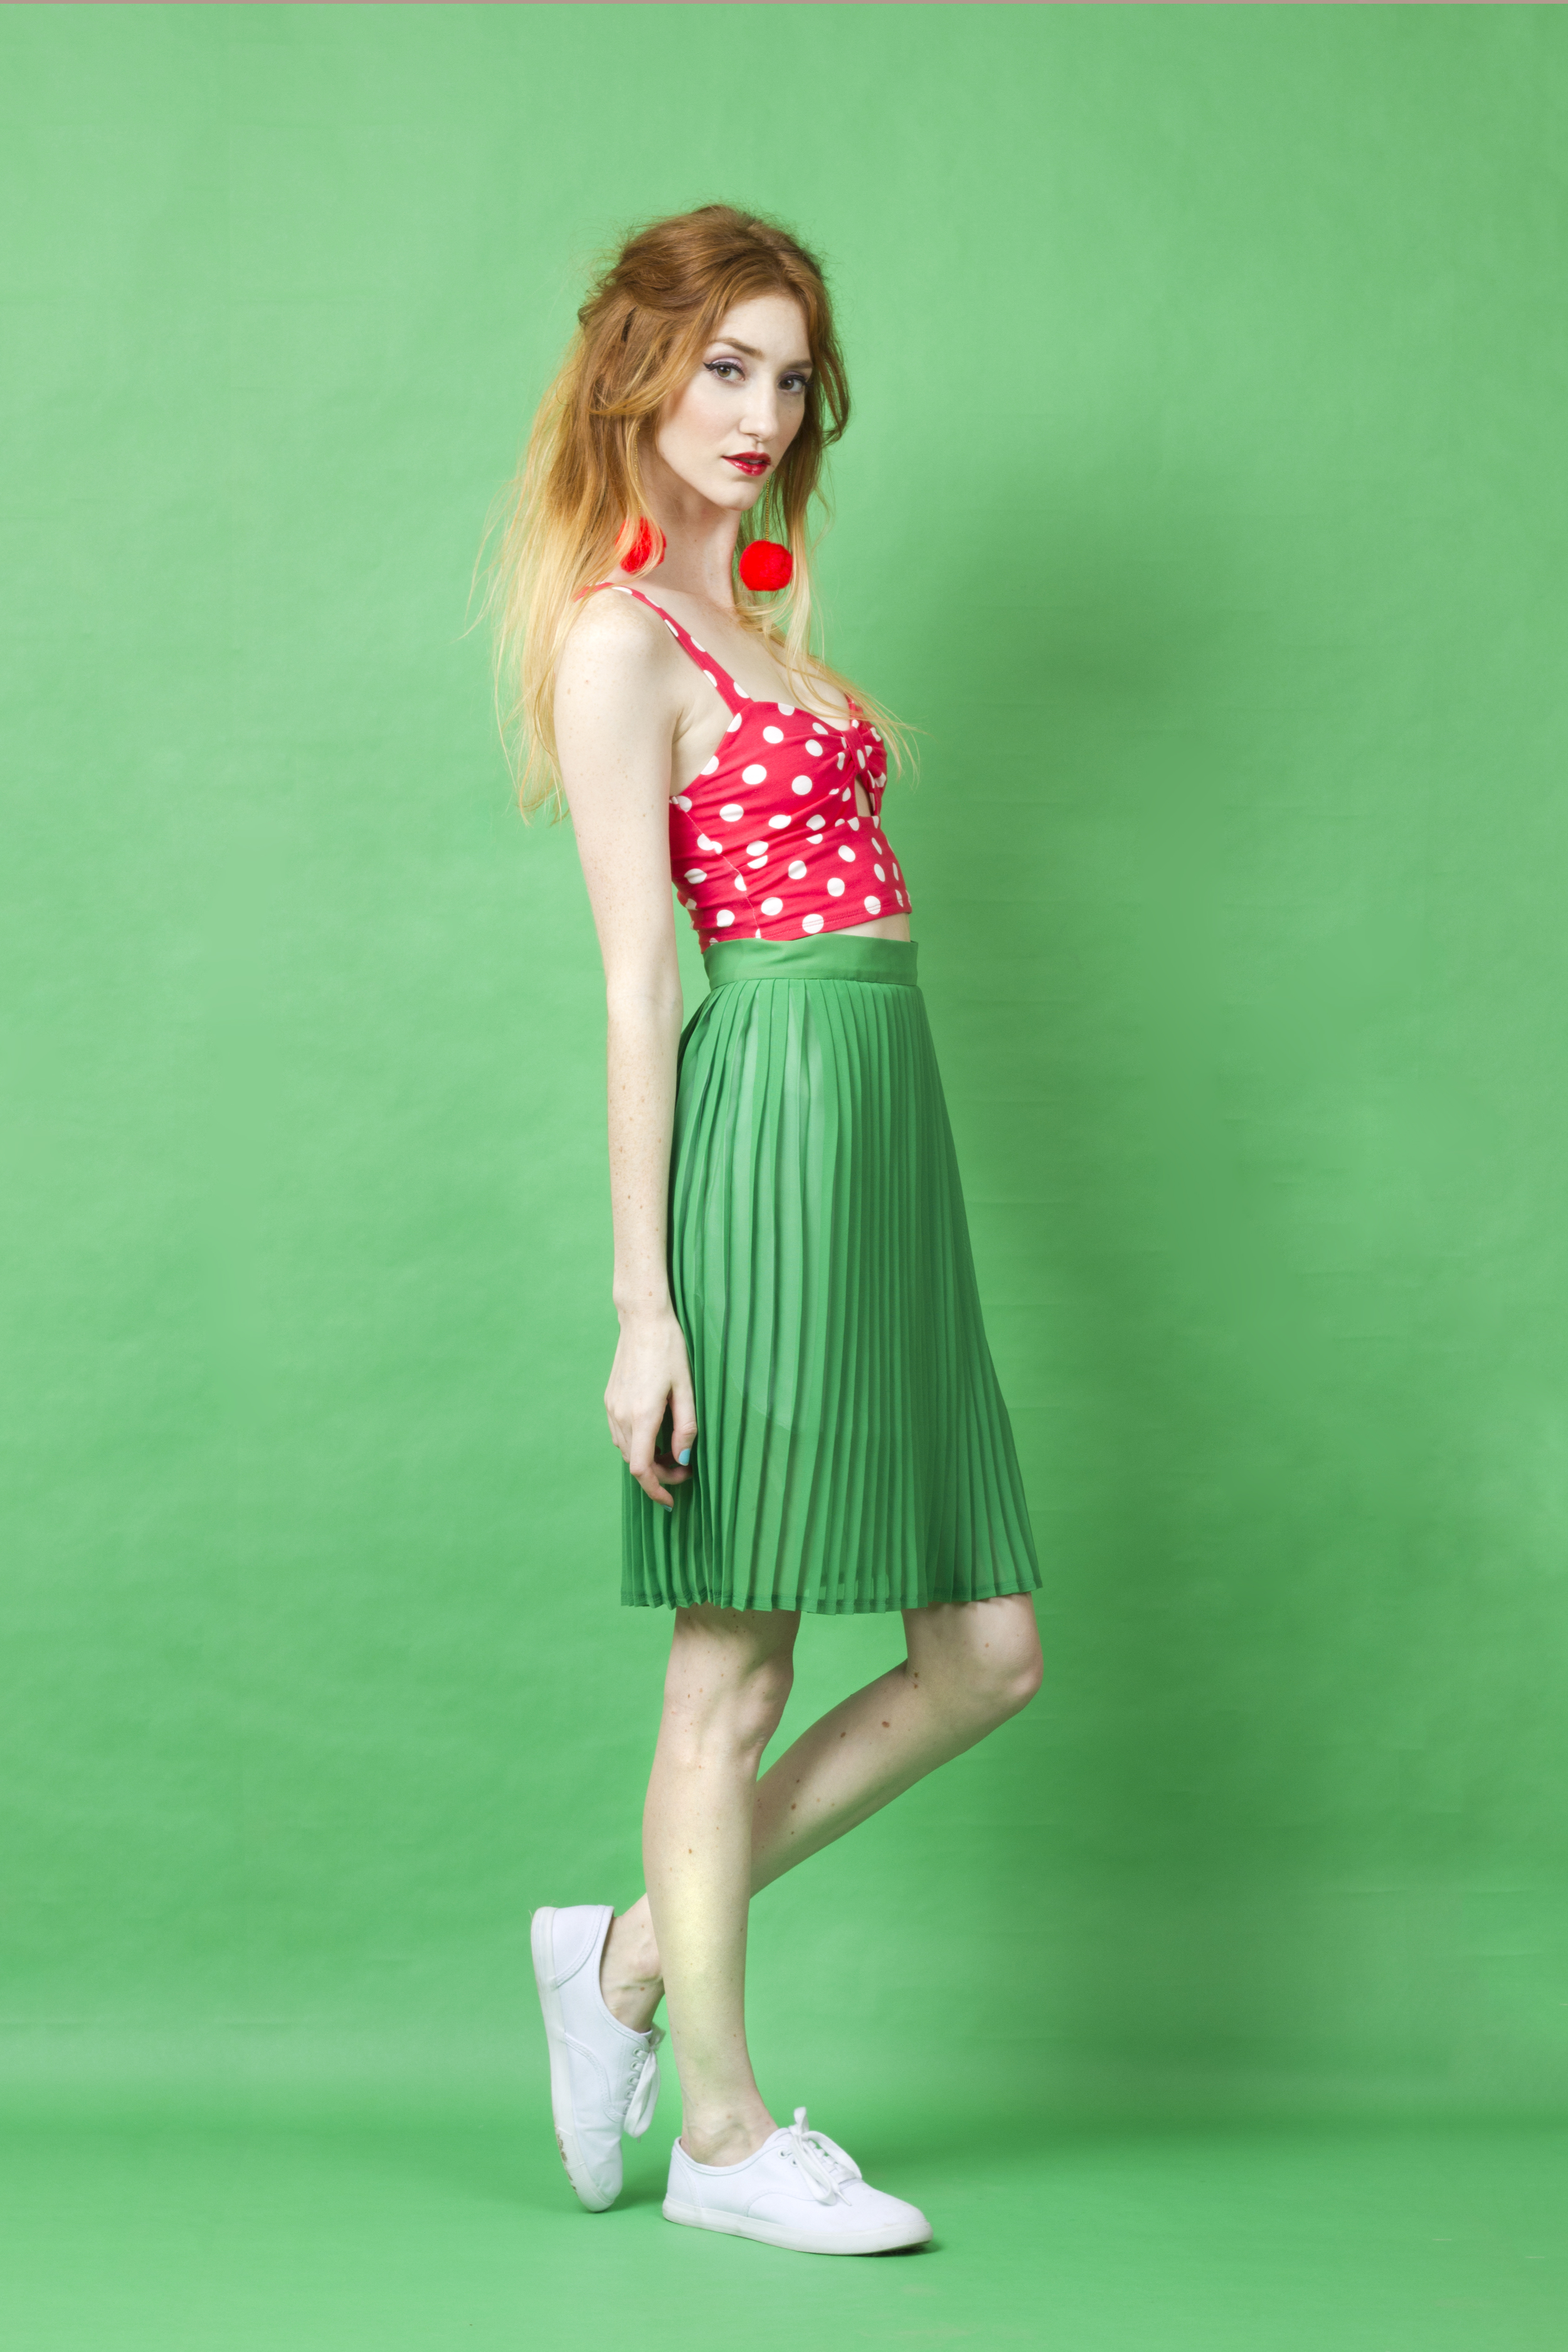 Being a strawberry is fun! All you need are a couple of polka dots to style yourself in red and green (think: Christmas in July)